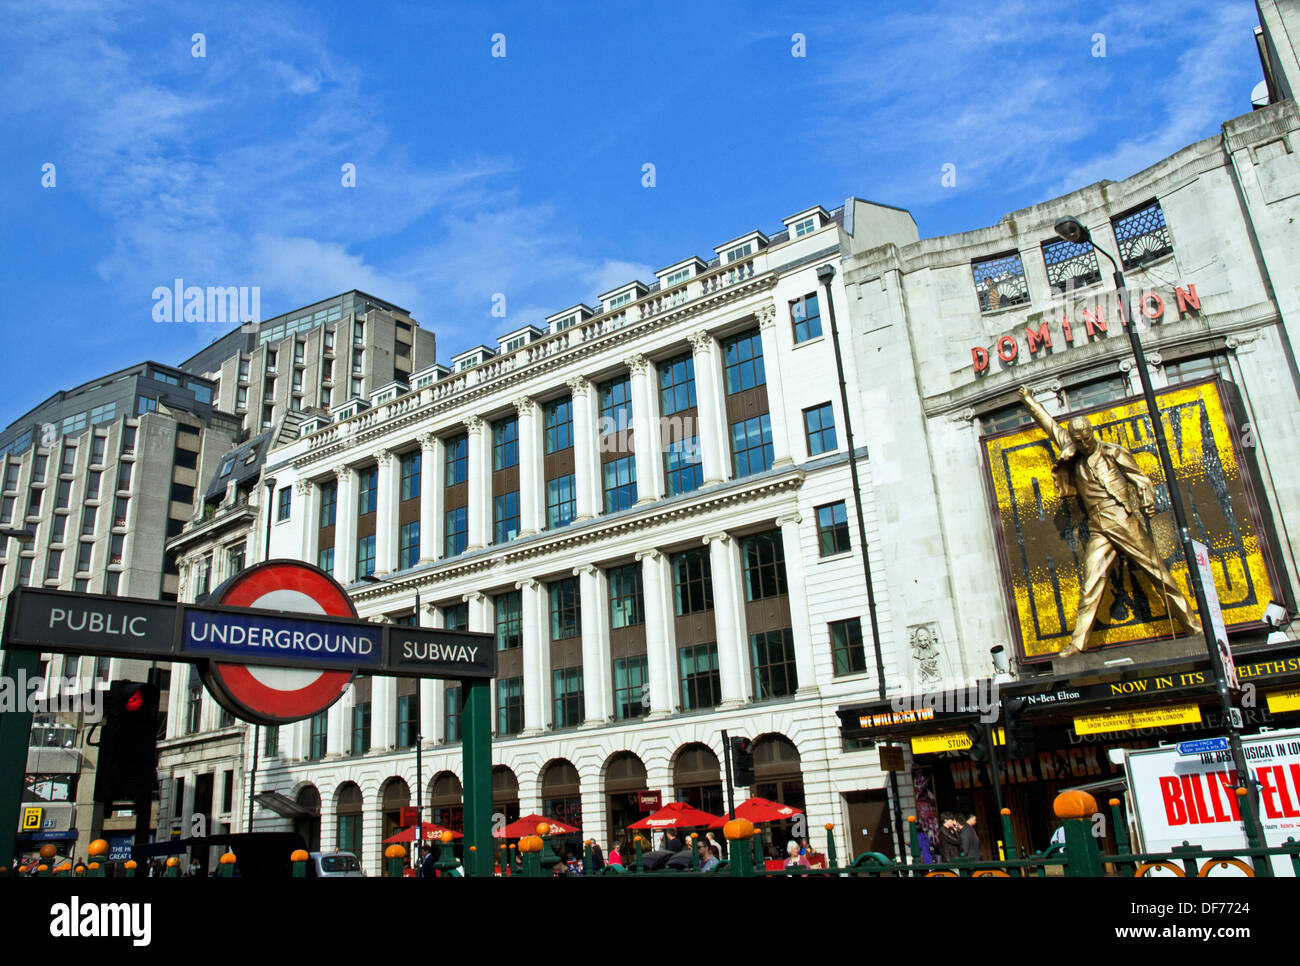 View Of The Dominion Theatre And Tottenham Court Road Underground Sign West End London England United Kingdom